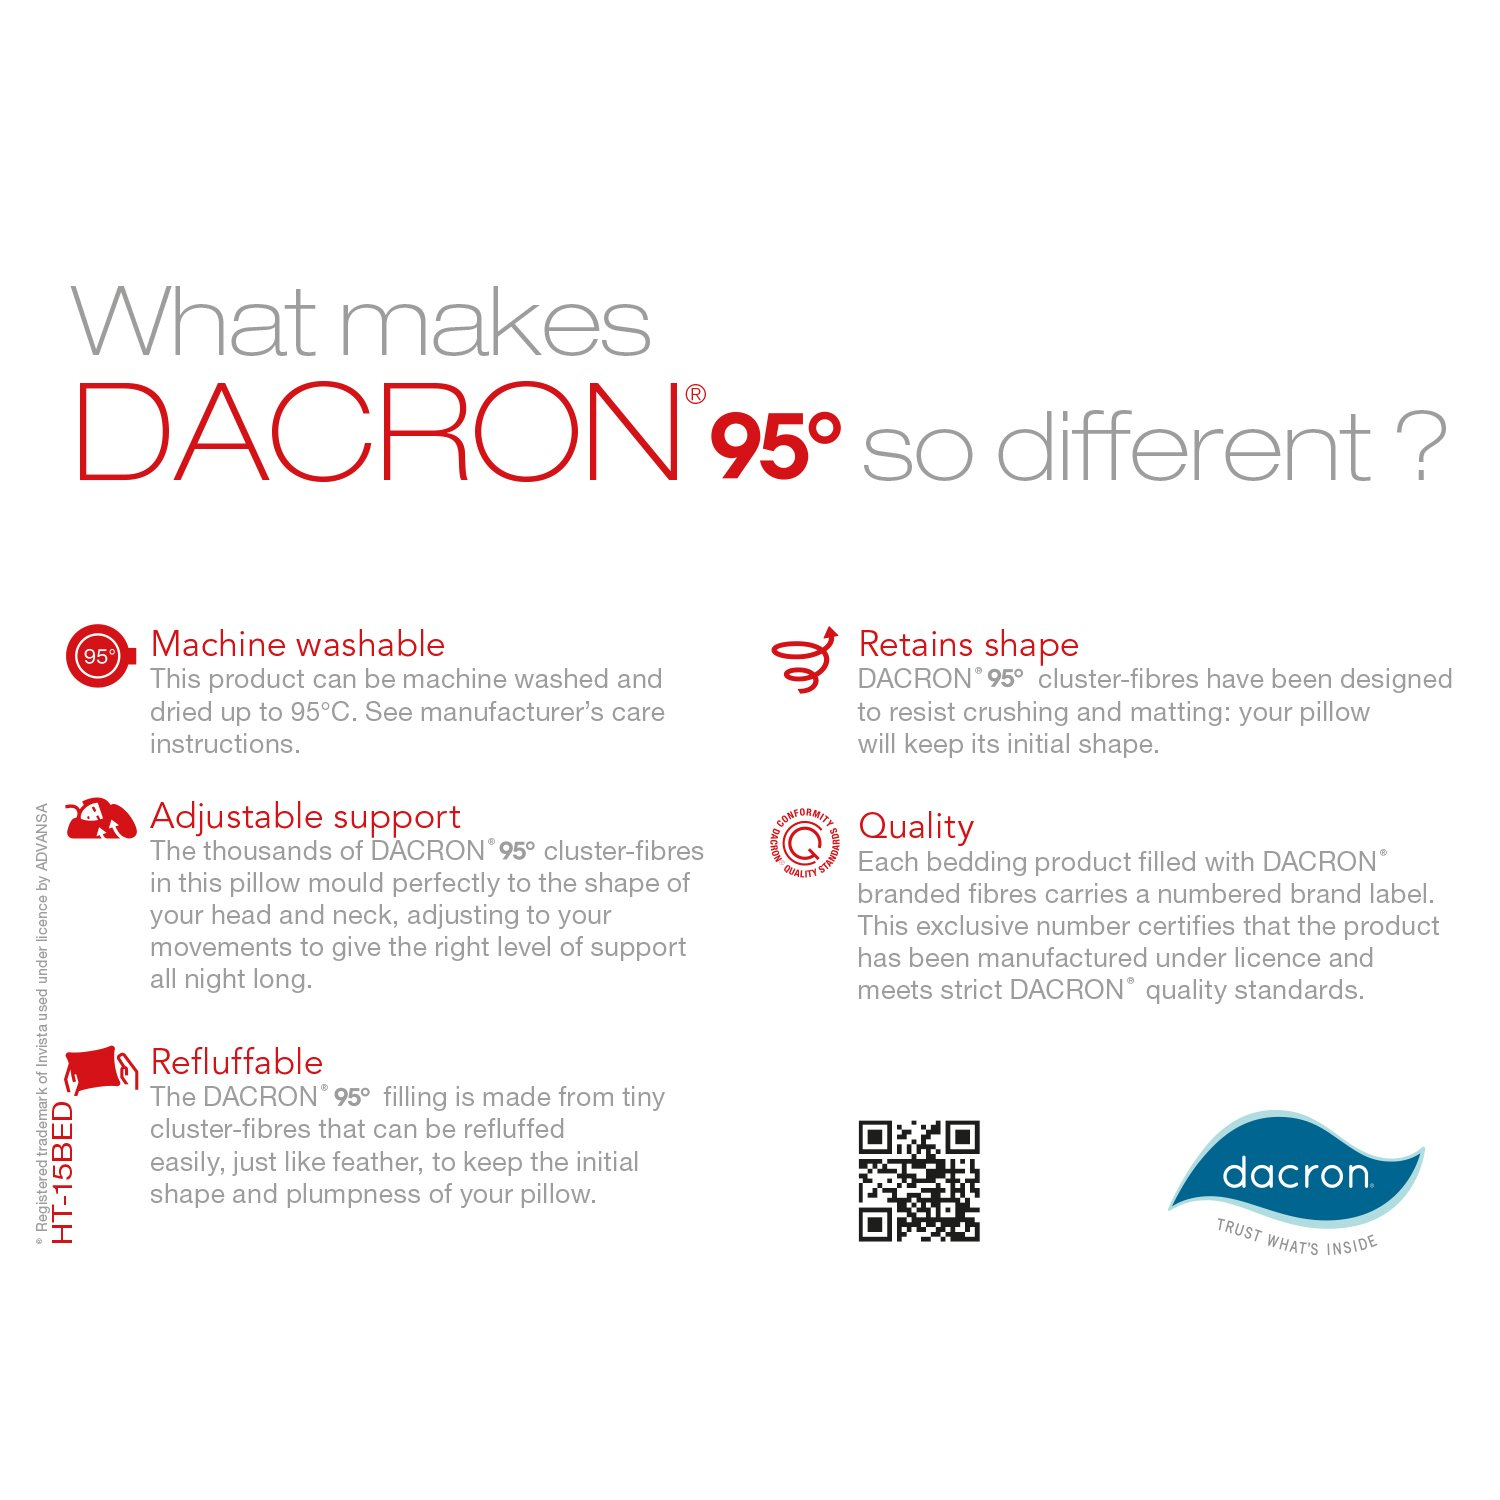 What is Dacron made of?